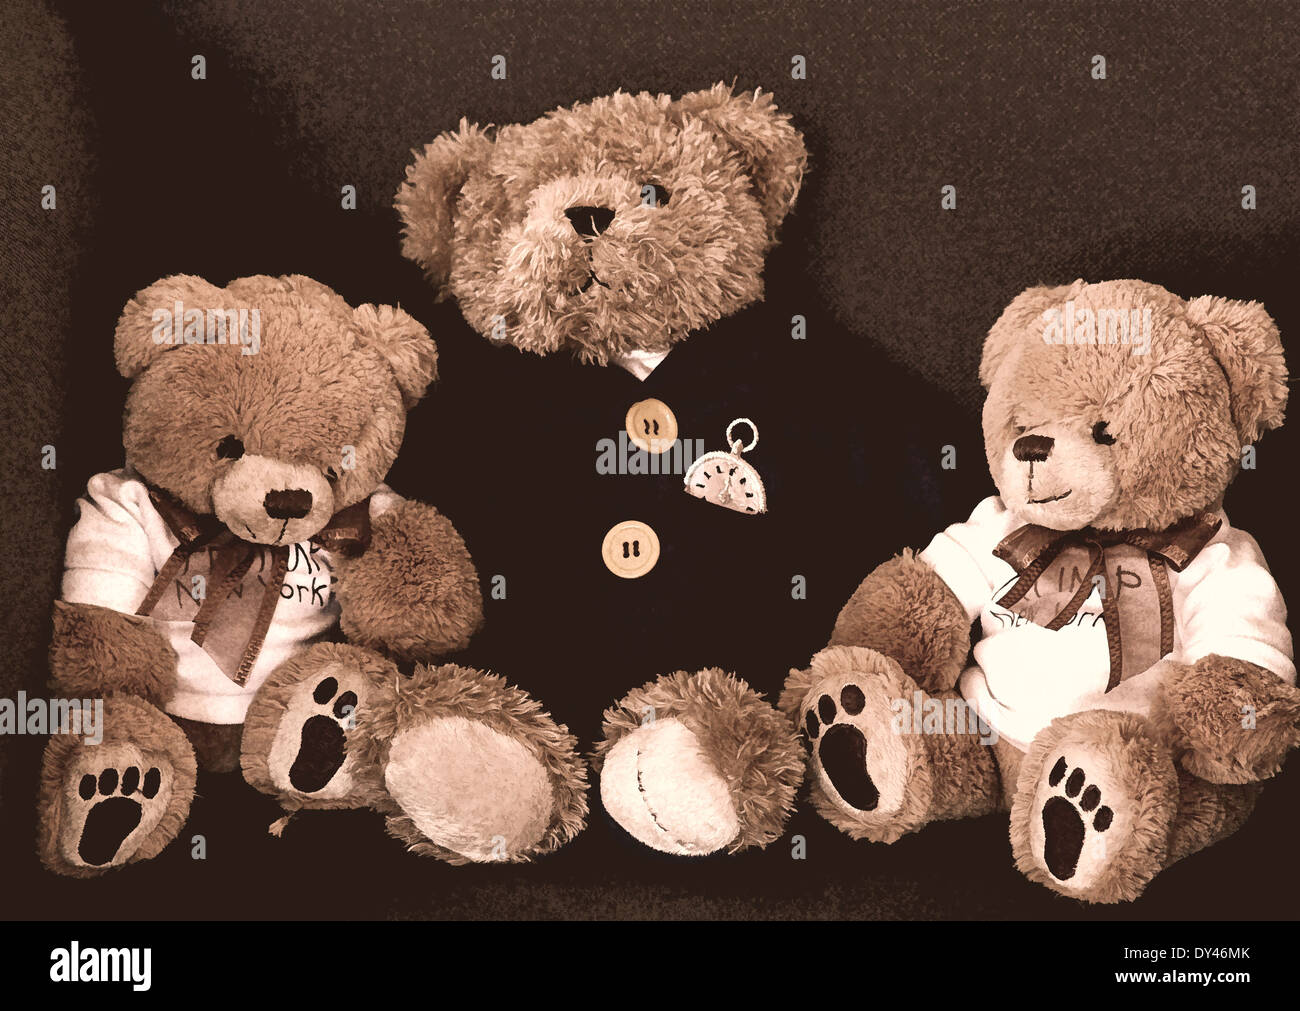 Collection of cuddly teddy bears seated in an armchair. - Stock Image